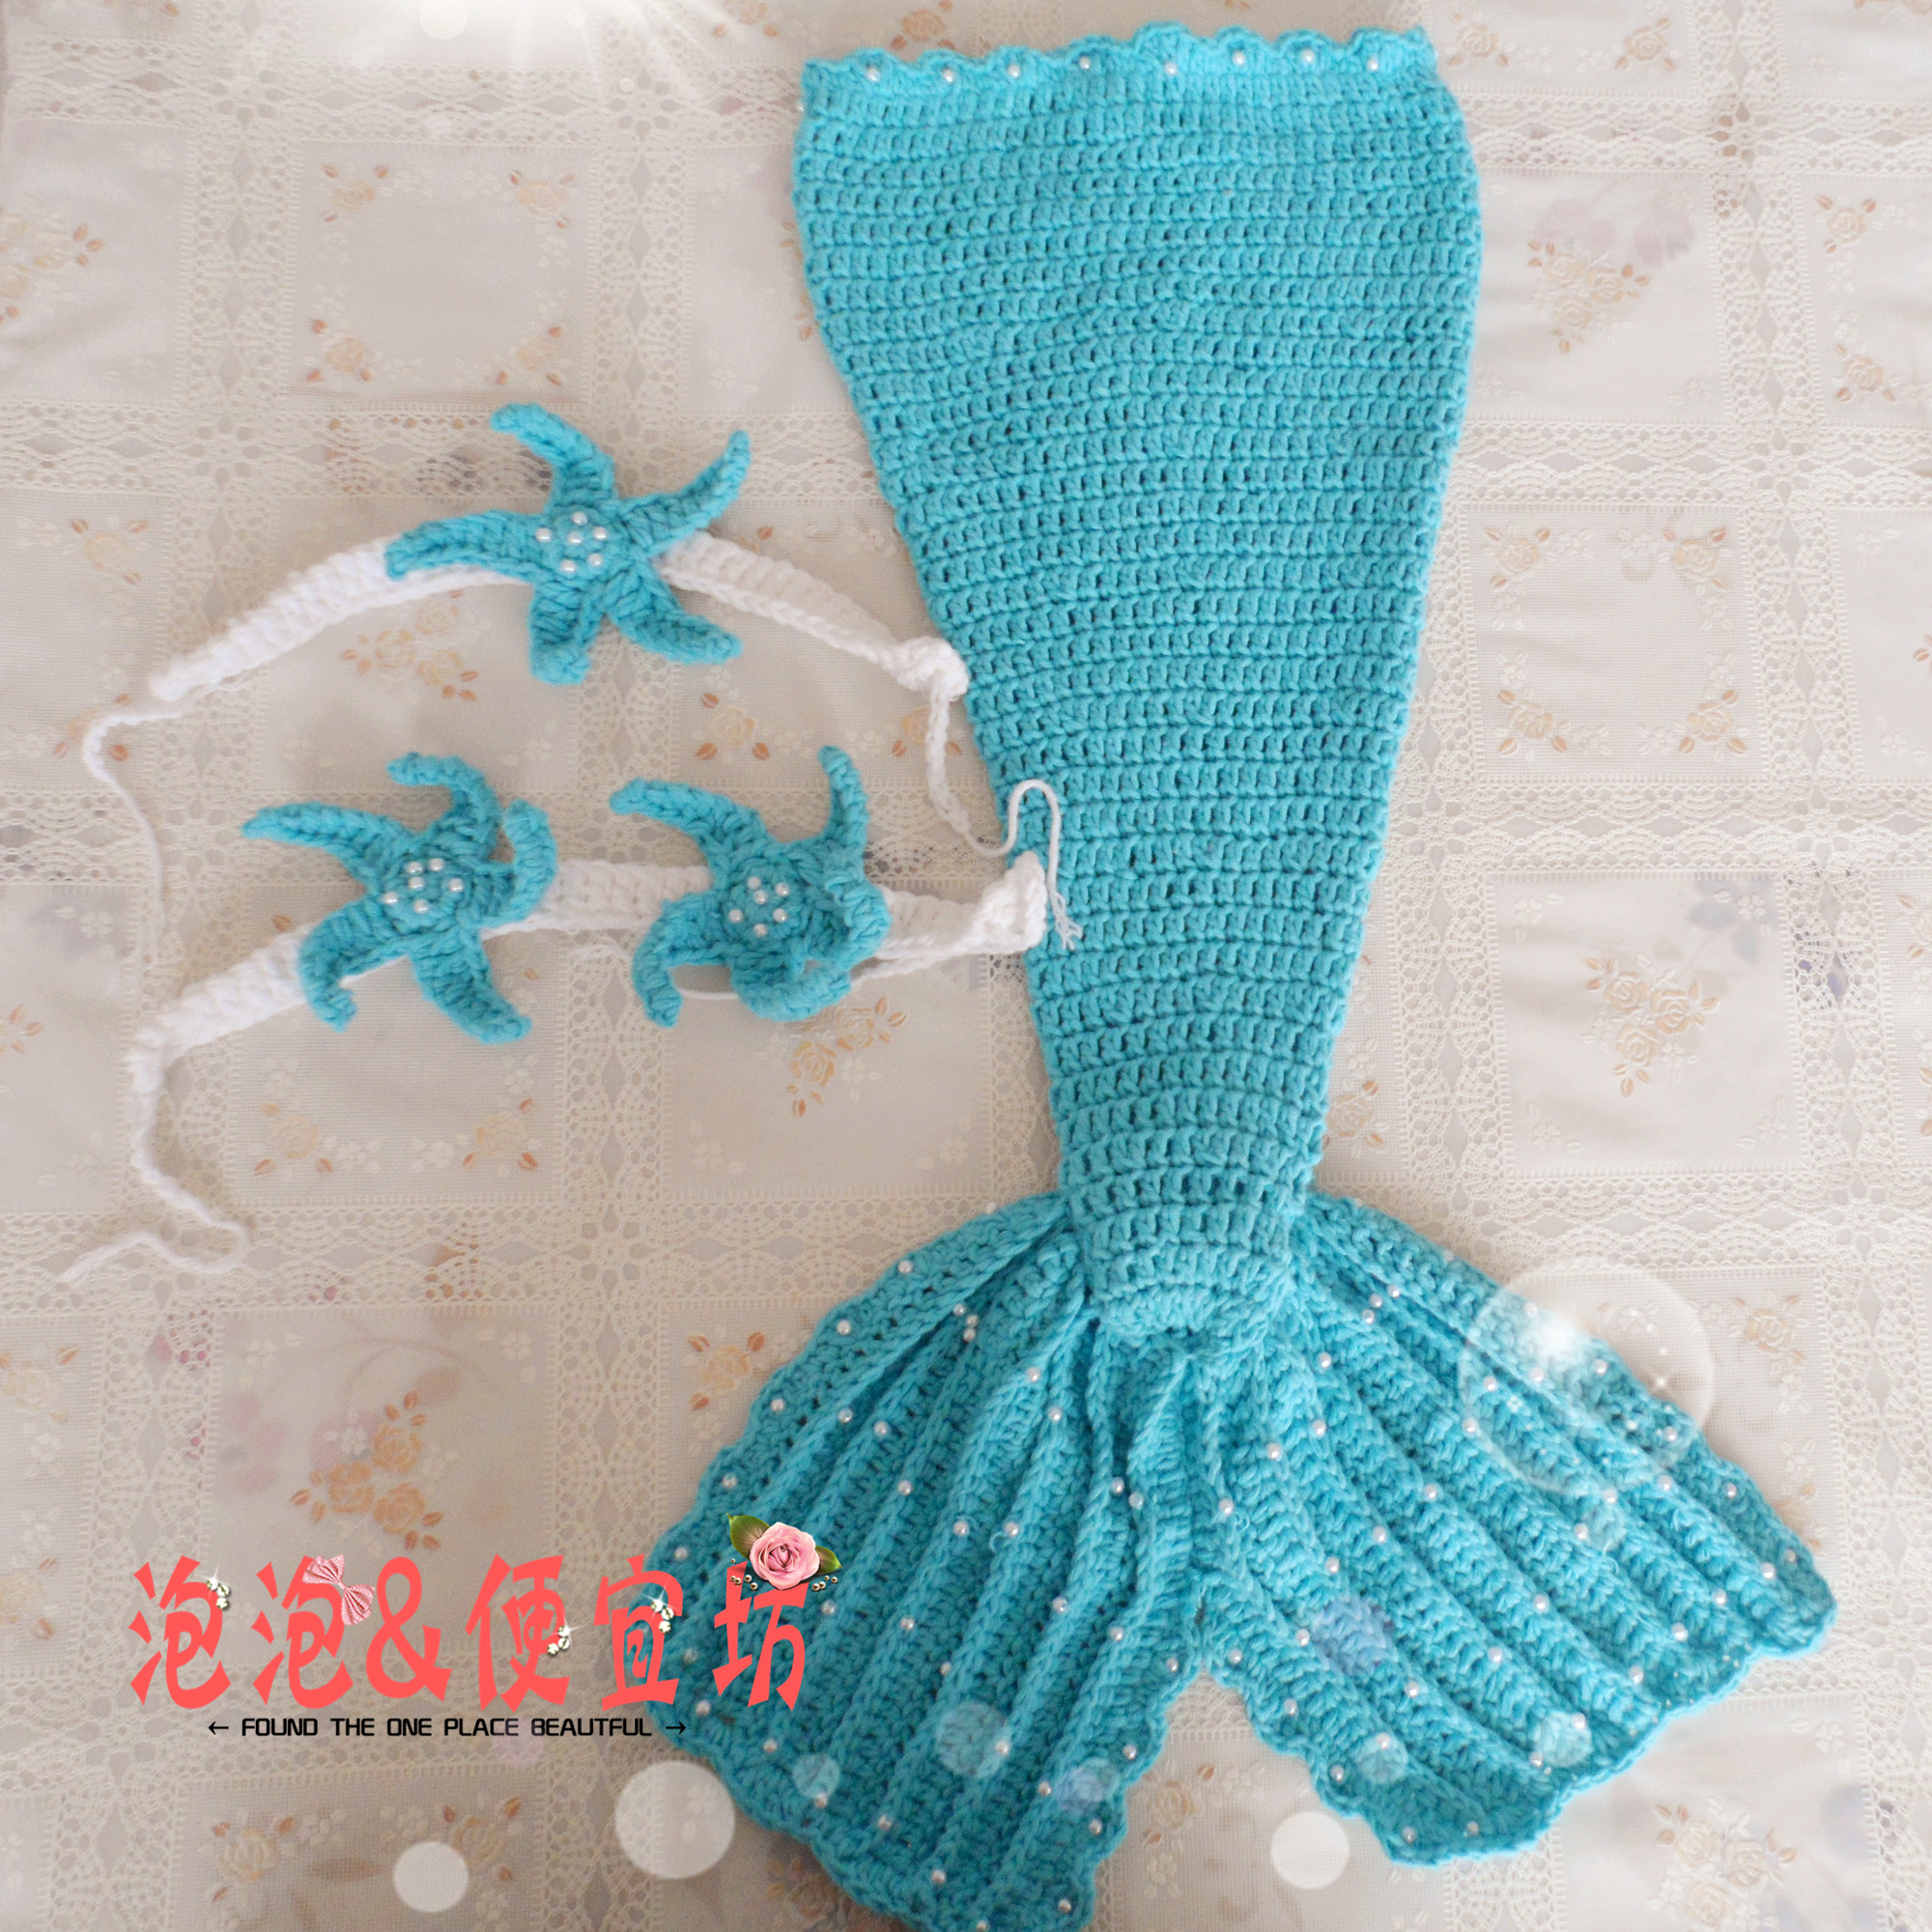 Crochet Free Pattern Mermaid Tail : Pics Photos - Crochet Mermaid Tail Pattern